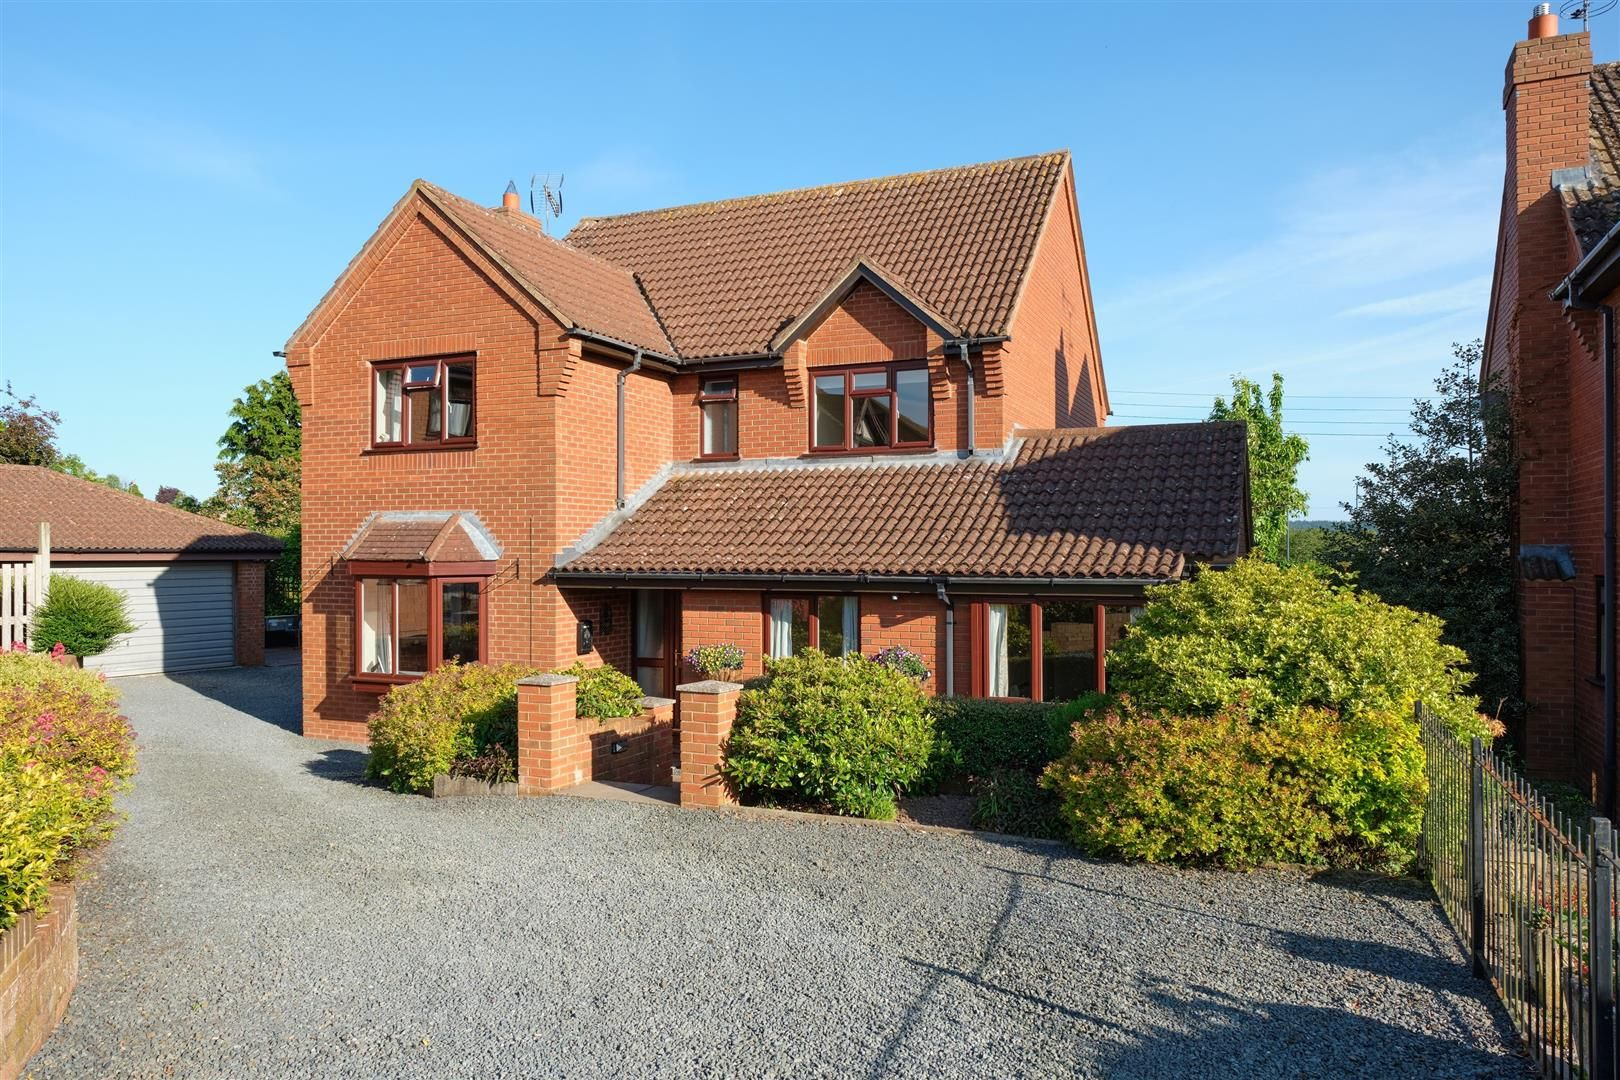 4 bed detached for sale in Leominster, HR6